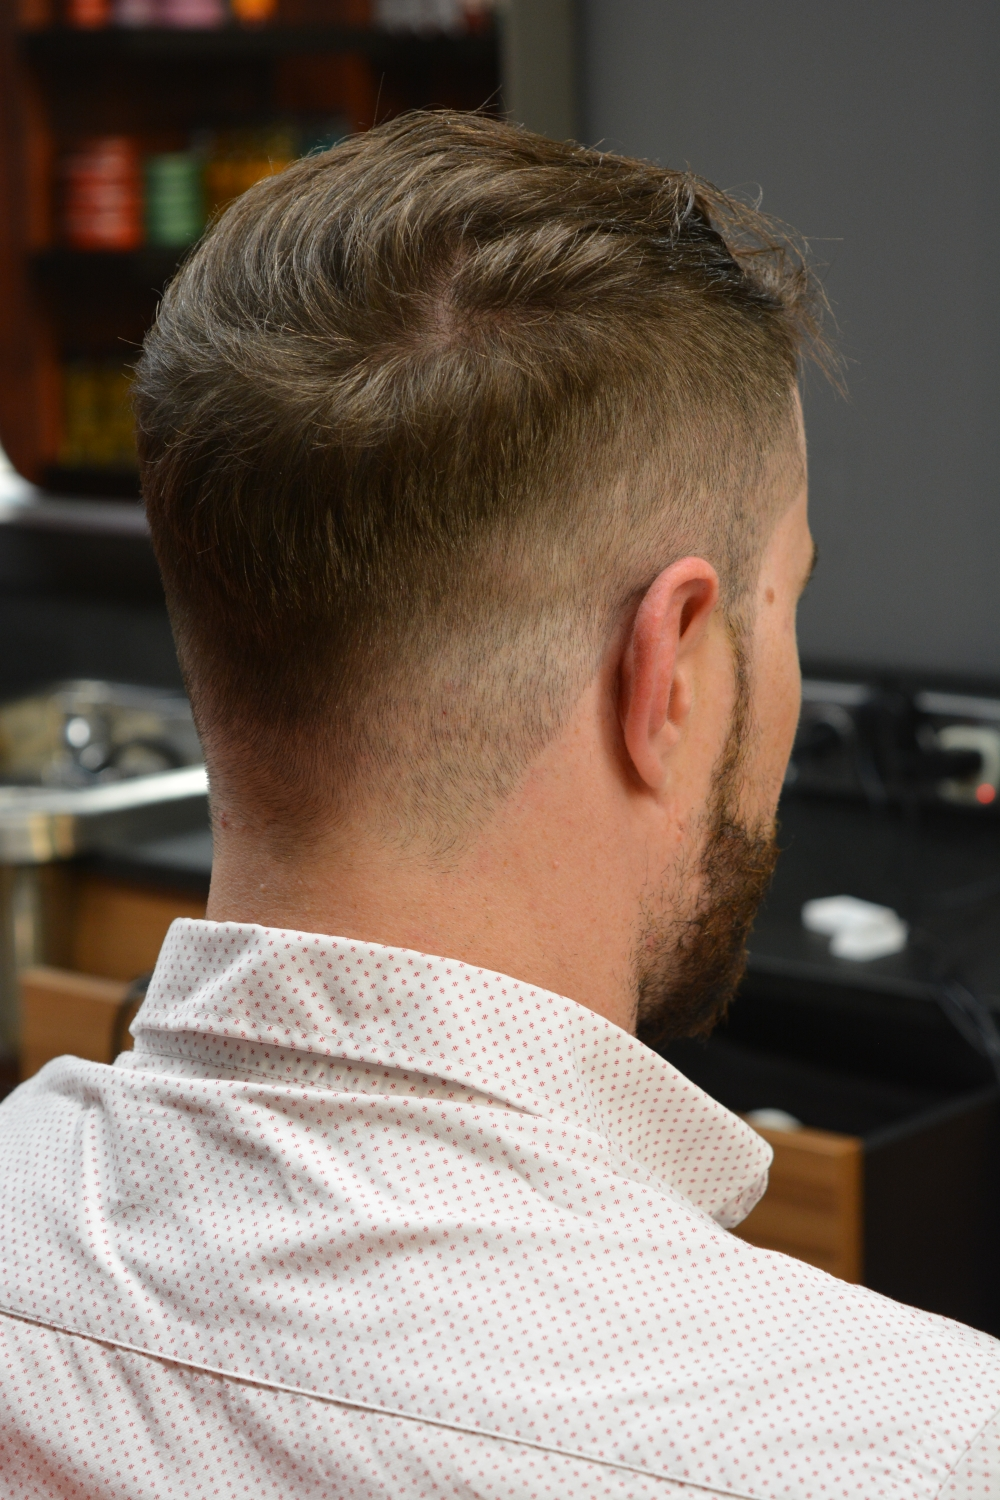 barber-day-079